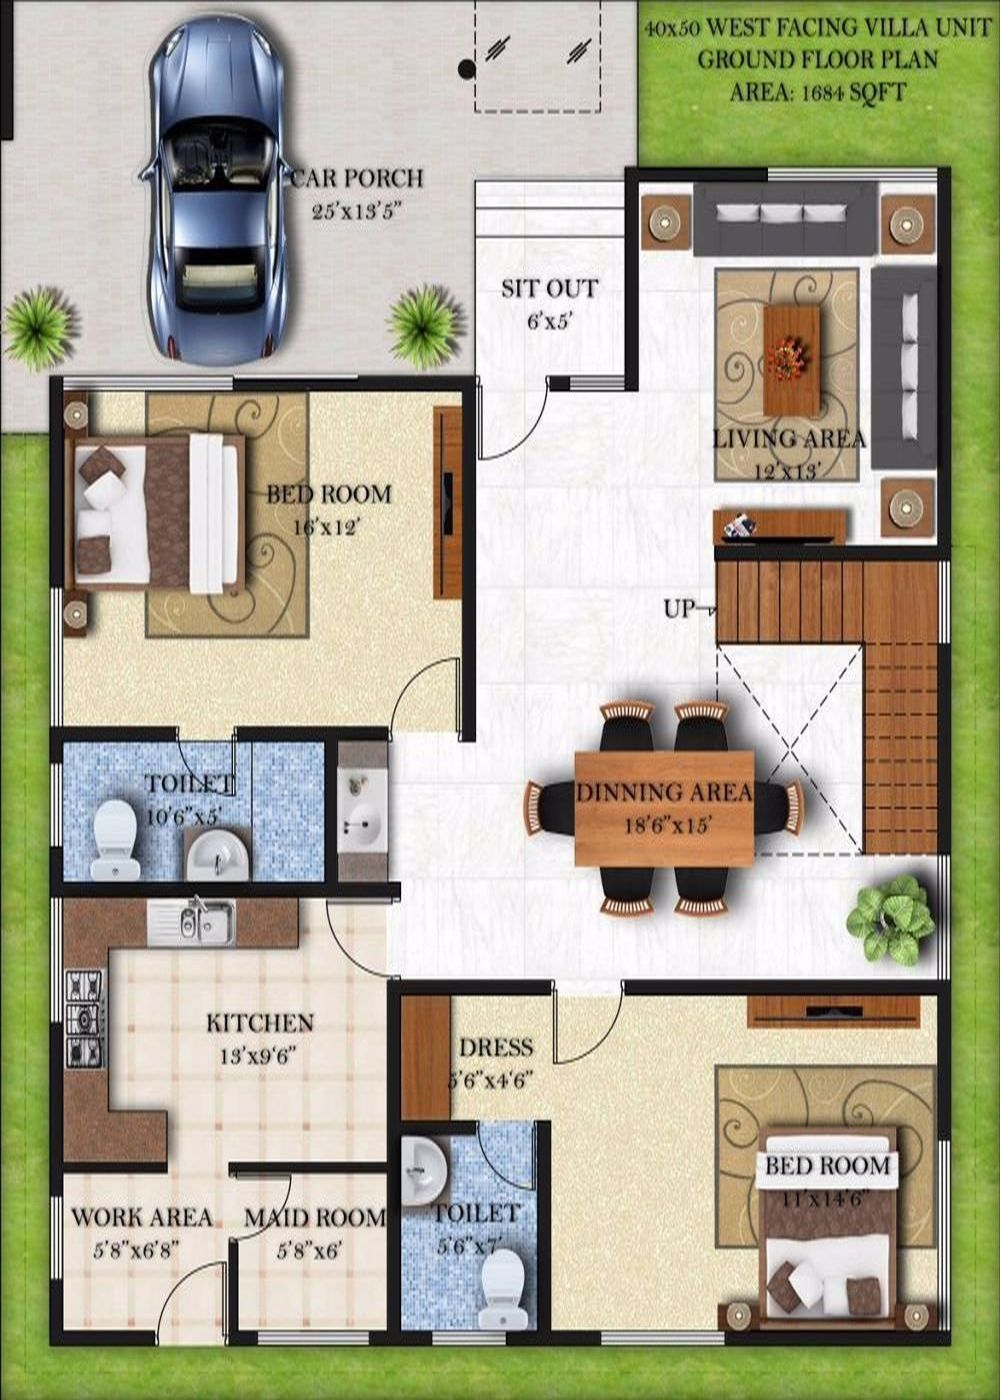 House plan  unique glamorous  plans design ideas home also best images in rh pinterest